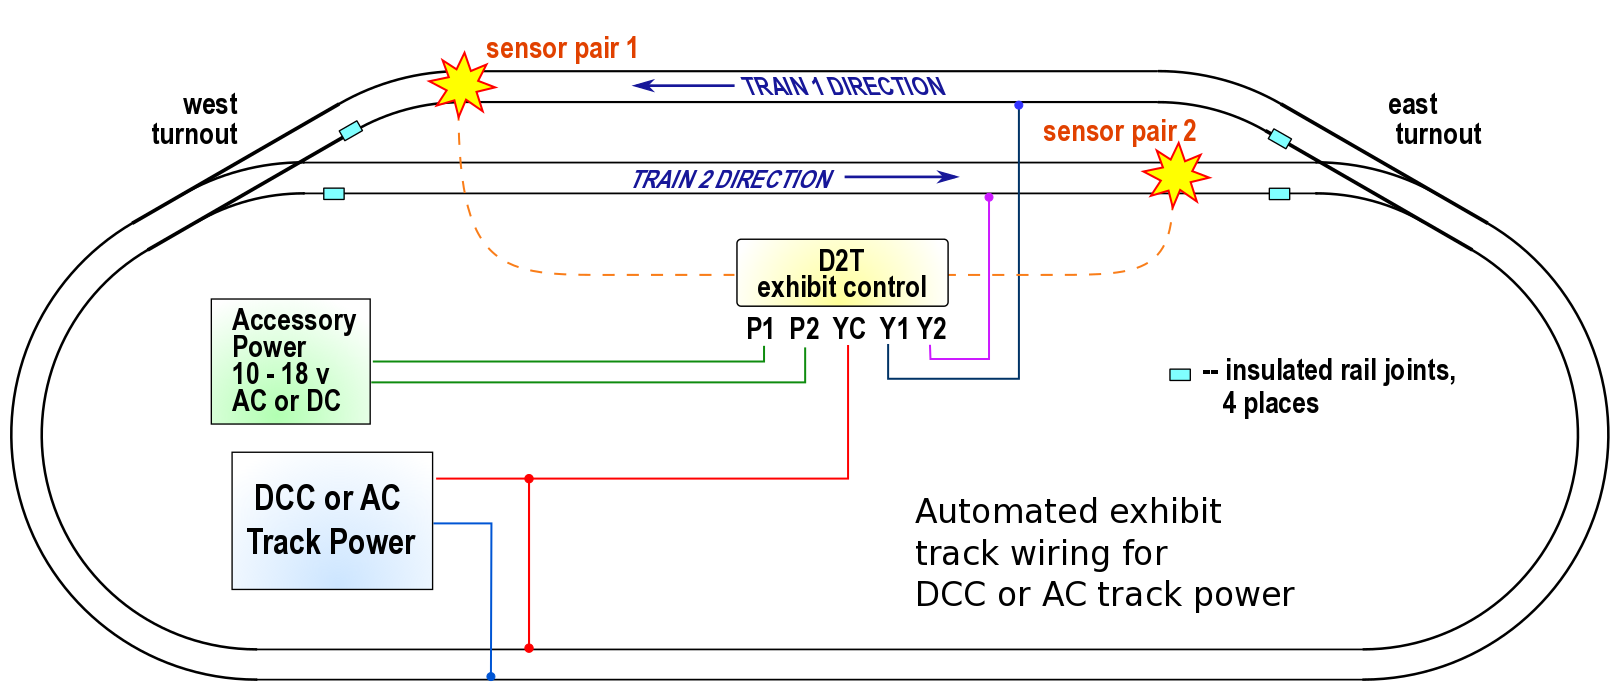 loop wiring diagram for ac or dcc layout loves Tortoise Switch Machine Wiring Diagram dcc track wiring wye